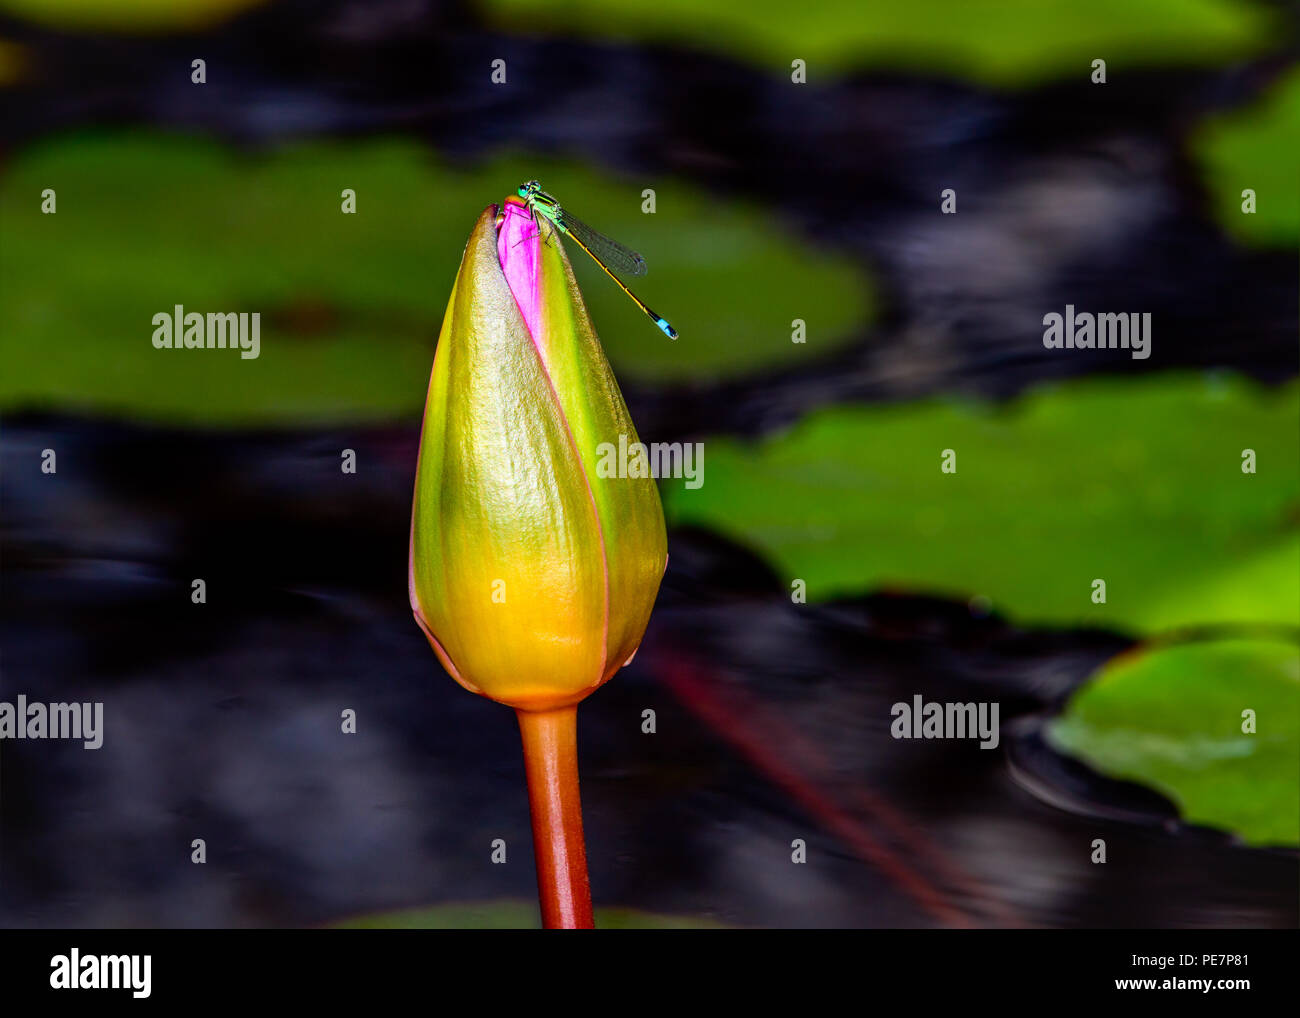 Damselfly resting on a pink lotus bud. Lily pads in the background. - Stock Image